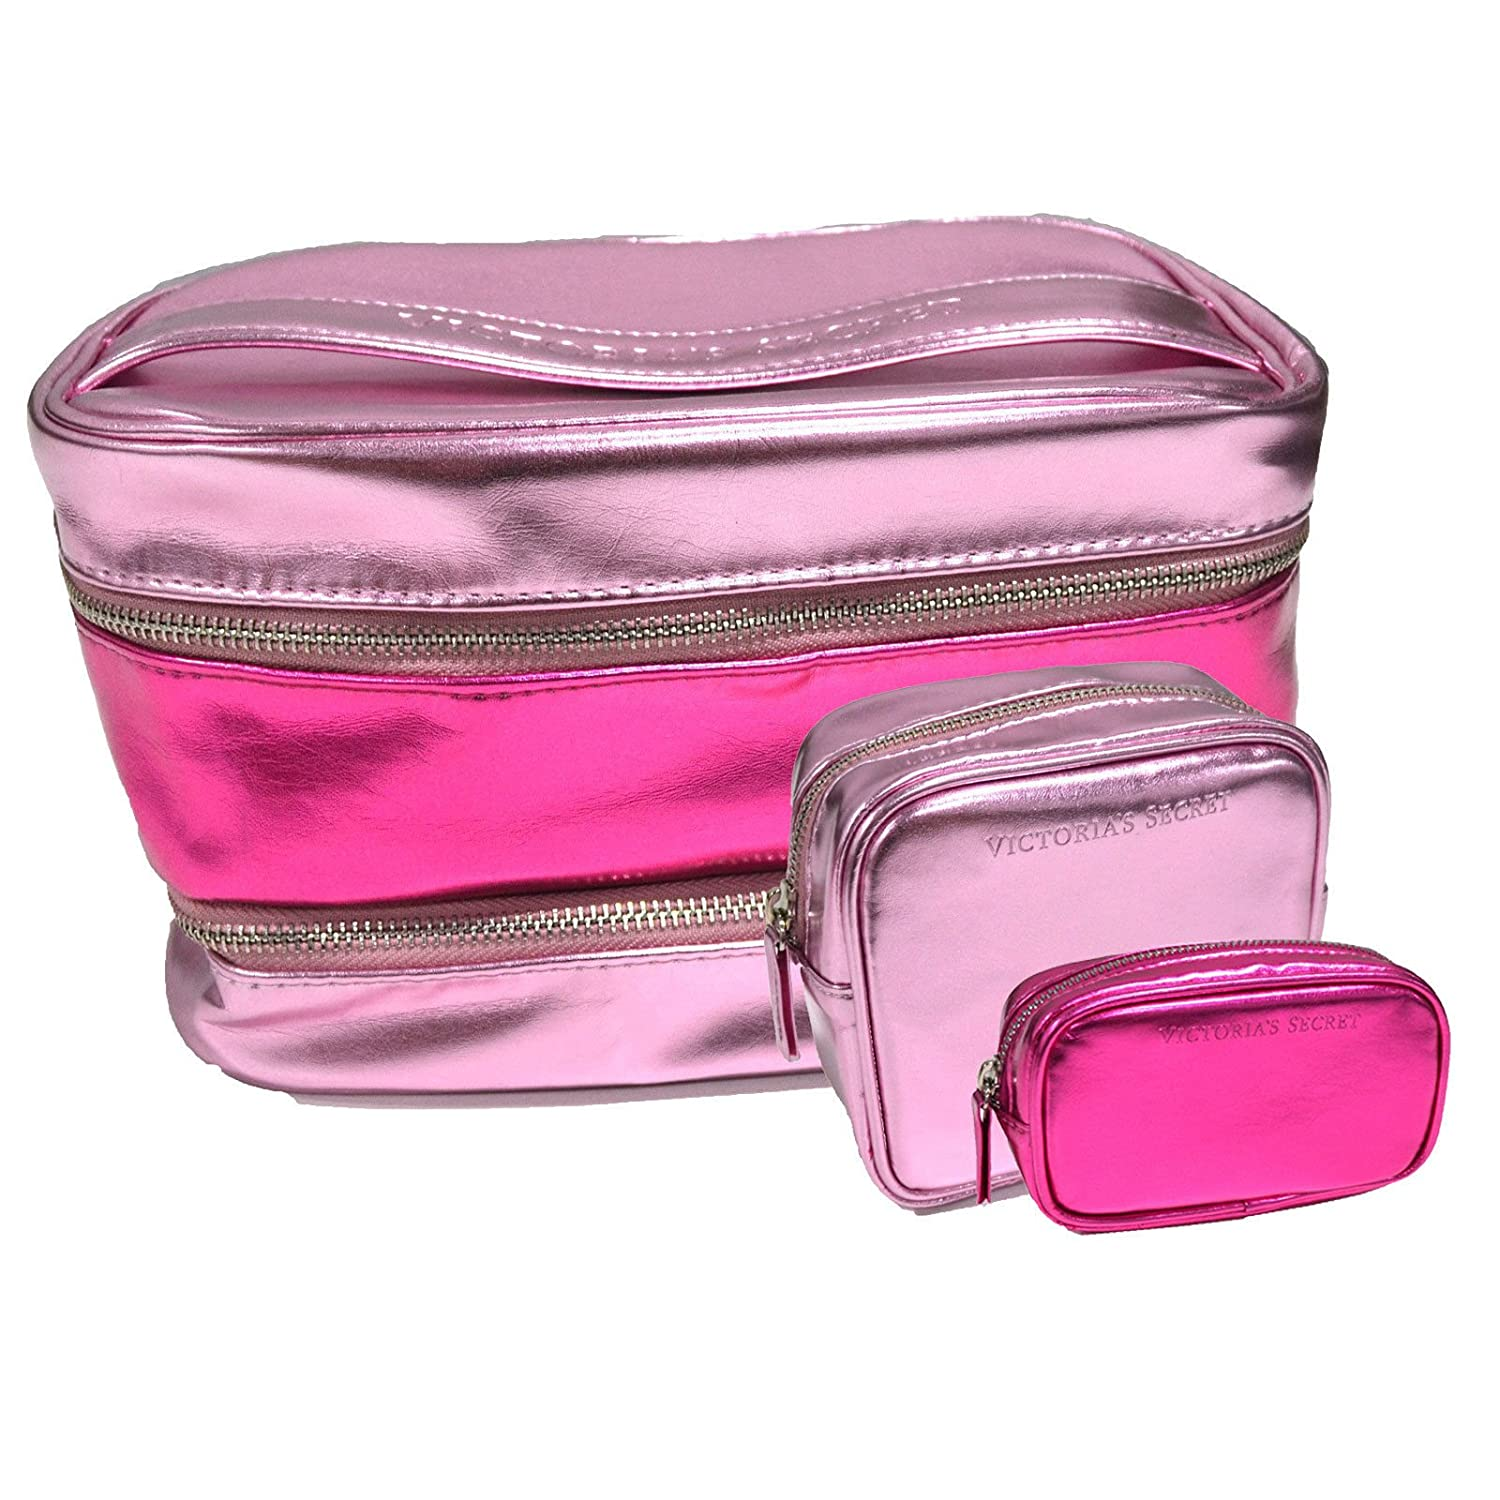 Victoria's Secret 3-Piece Pink Cosmetic Travel Bag